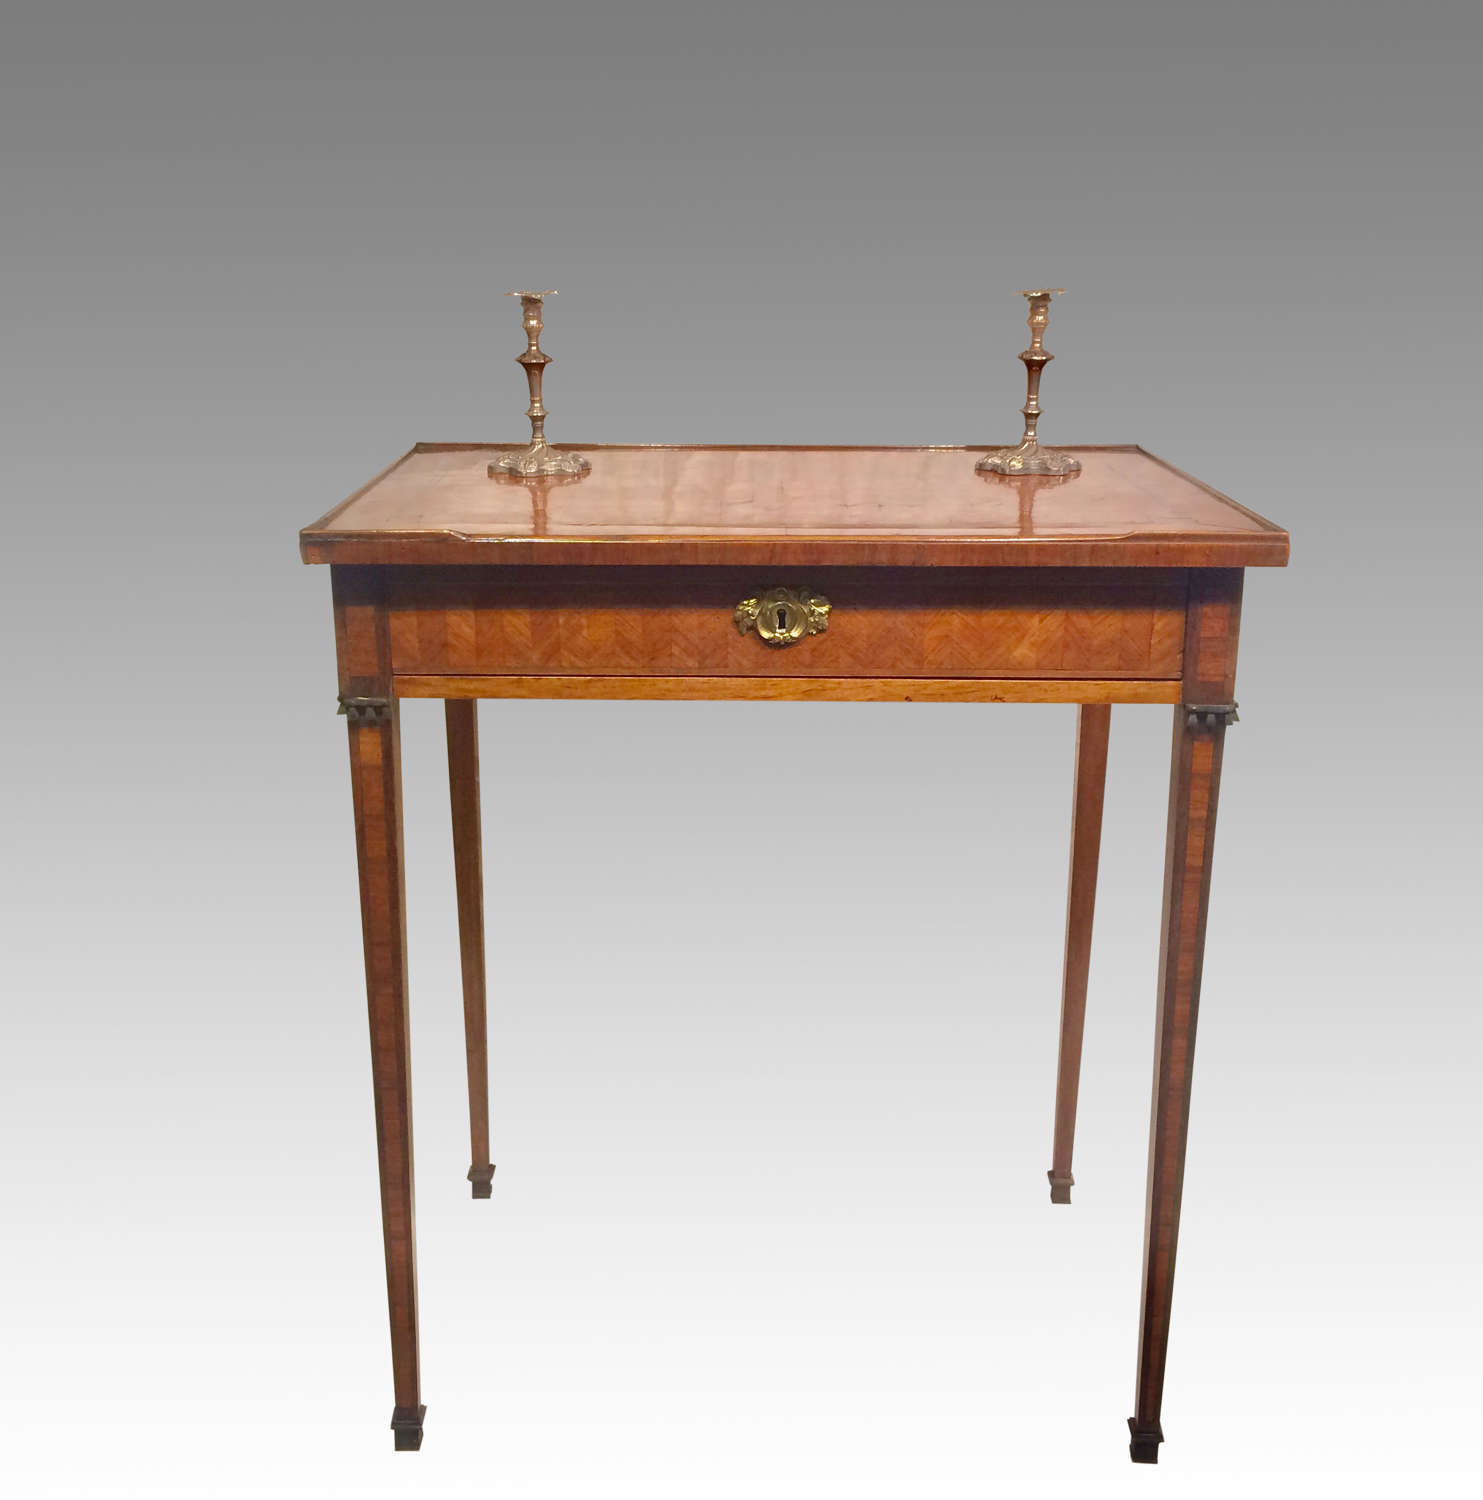 18th century French kingwood writing table.